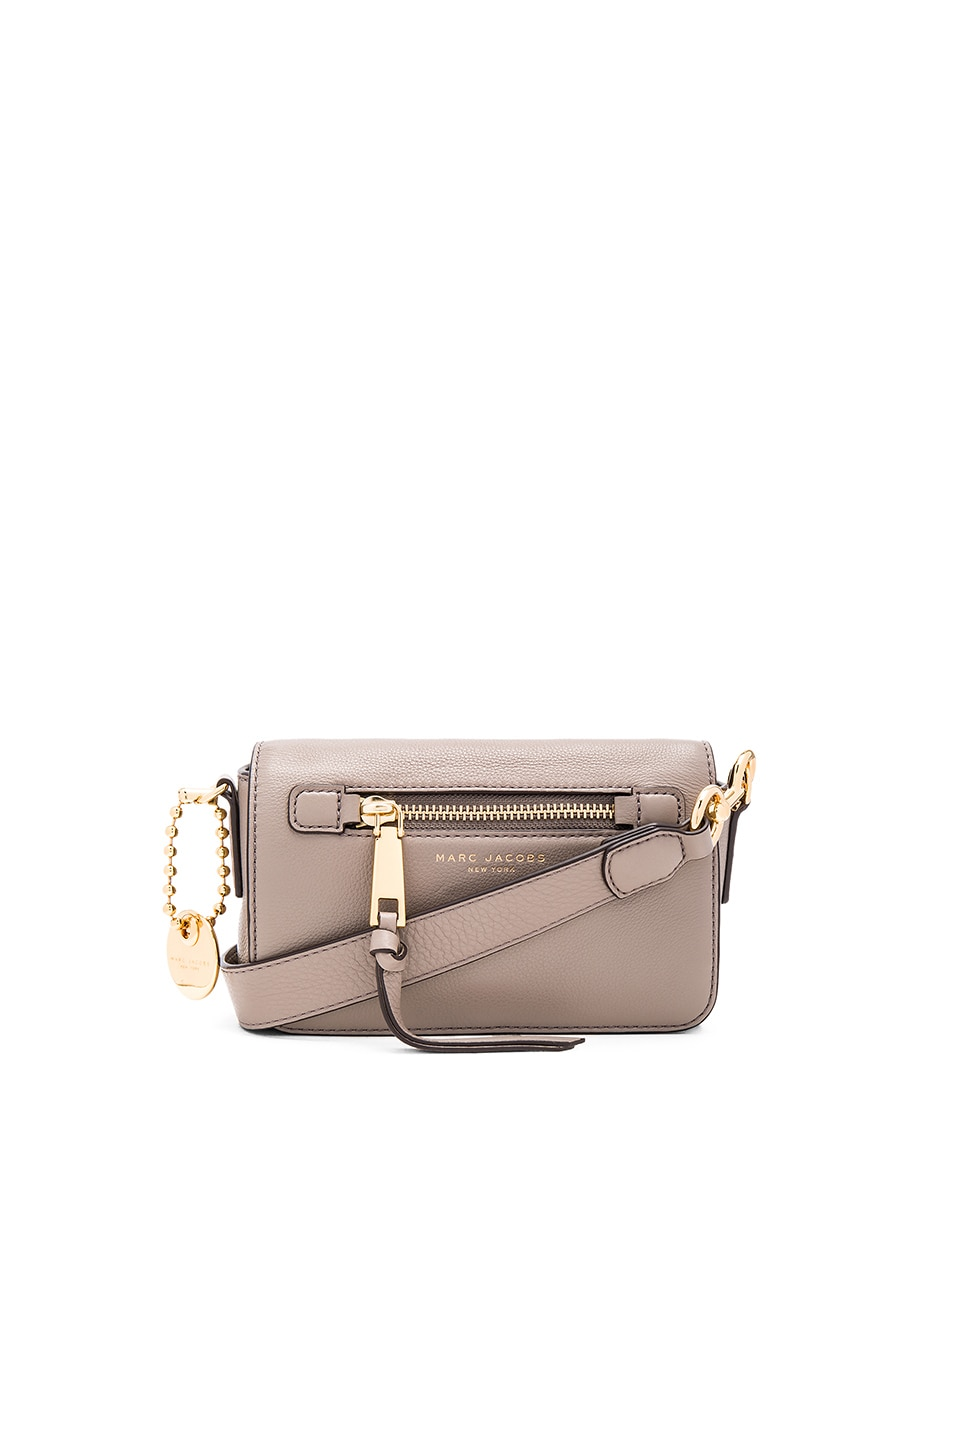 Recruit Crossbody by Marc Jacobs